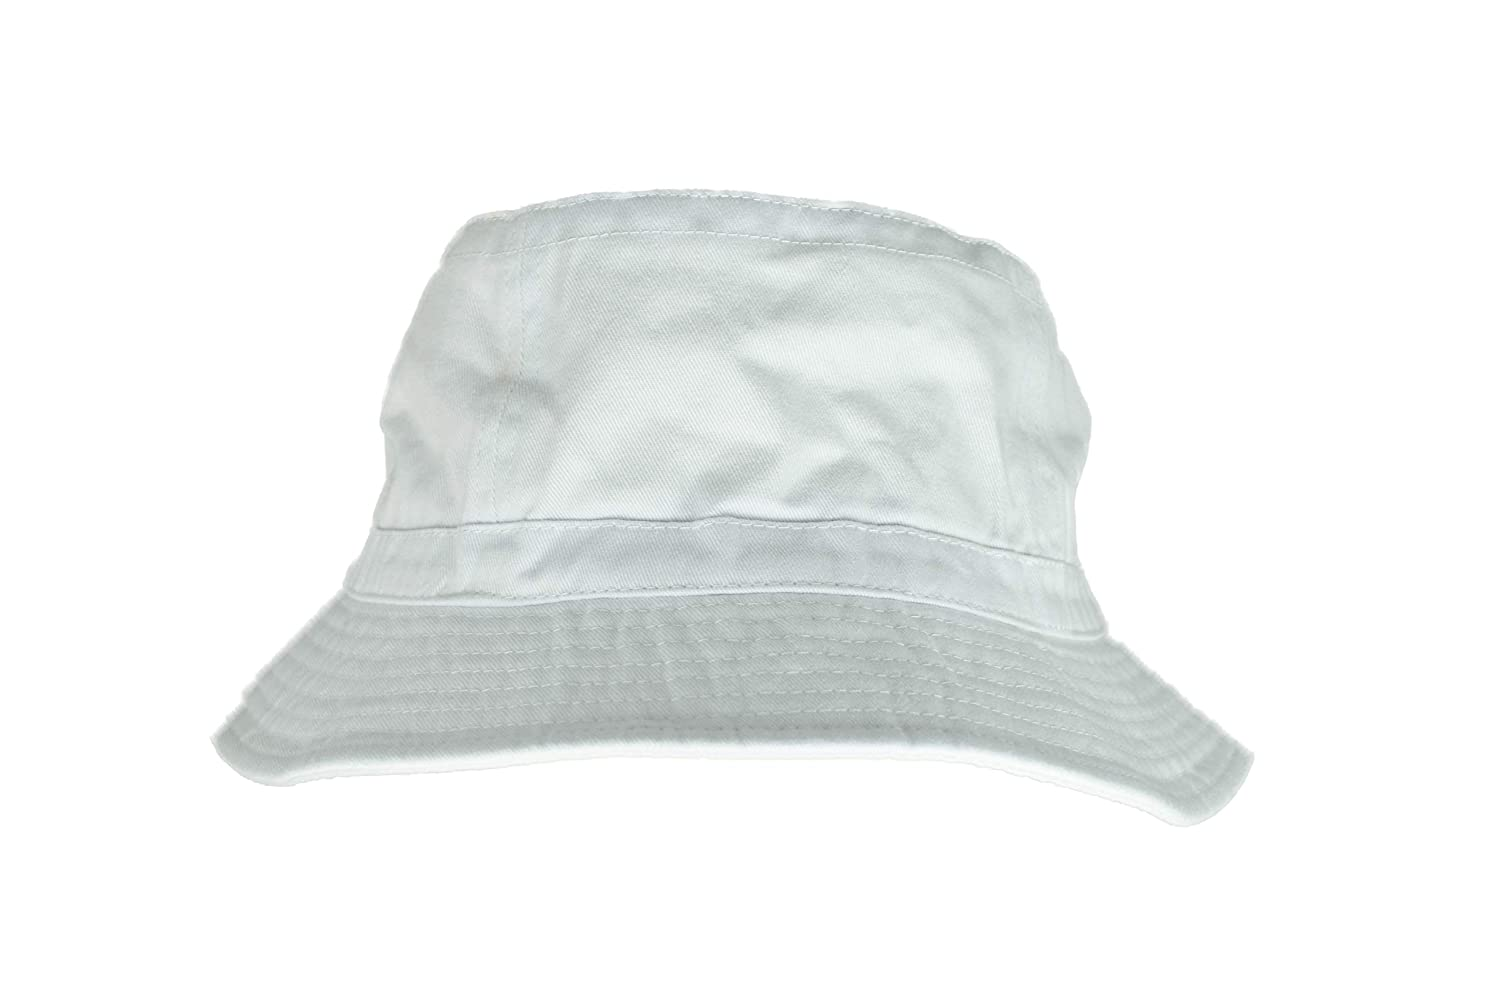 0d206913d1a Men s Bucket Hat -Cactus - Size 2X - Hat Size 7 3 4-8 at Amazon Men s  Clothing store